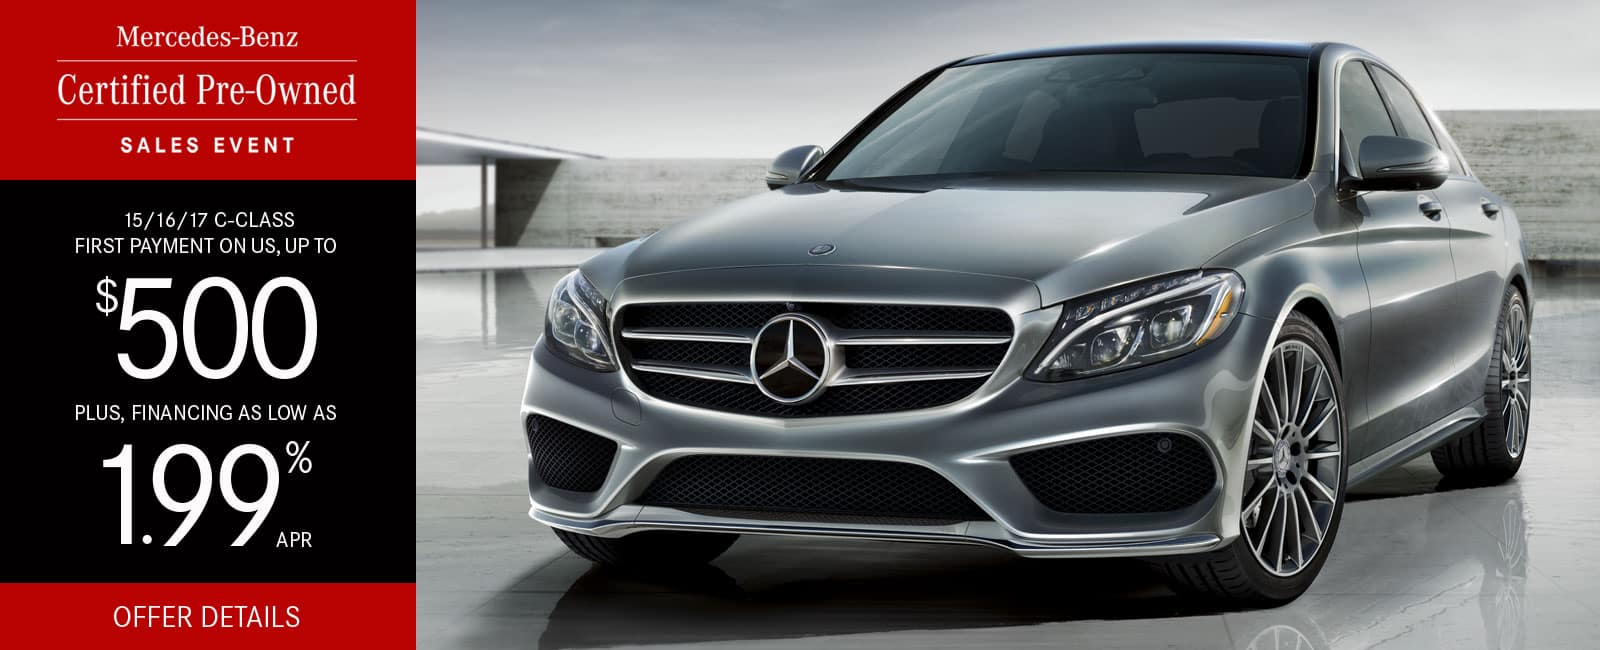 Mercedes Certified Pre Owned >> Certified Pre Owned Event Mercedes Benz Manhattan